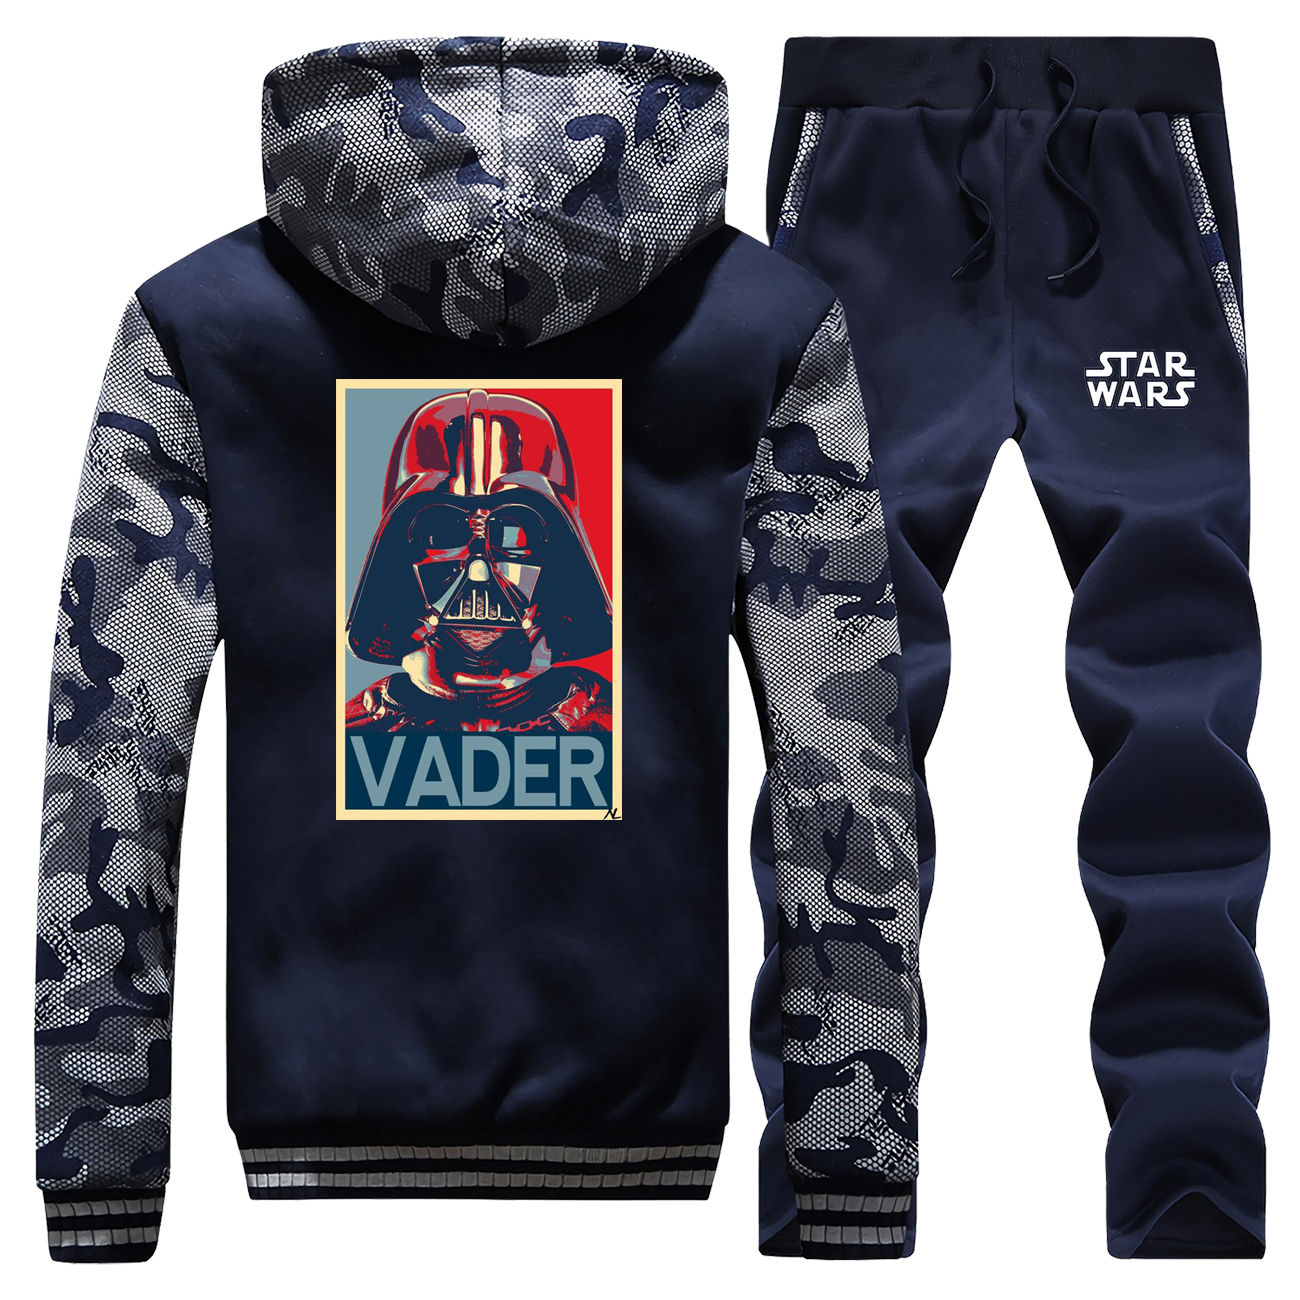 Winter 2019 Hot Sale Darth Vader Star Wars Hoodie Men Camouflage Coat Thick Suit Warm Jackets Suit Sportswear+Pants 2 Piece Set